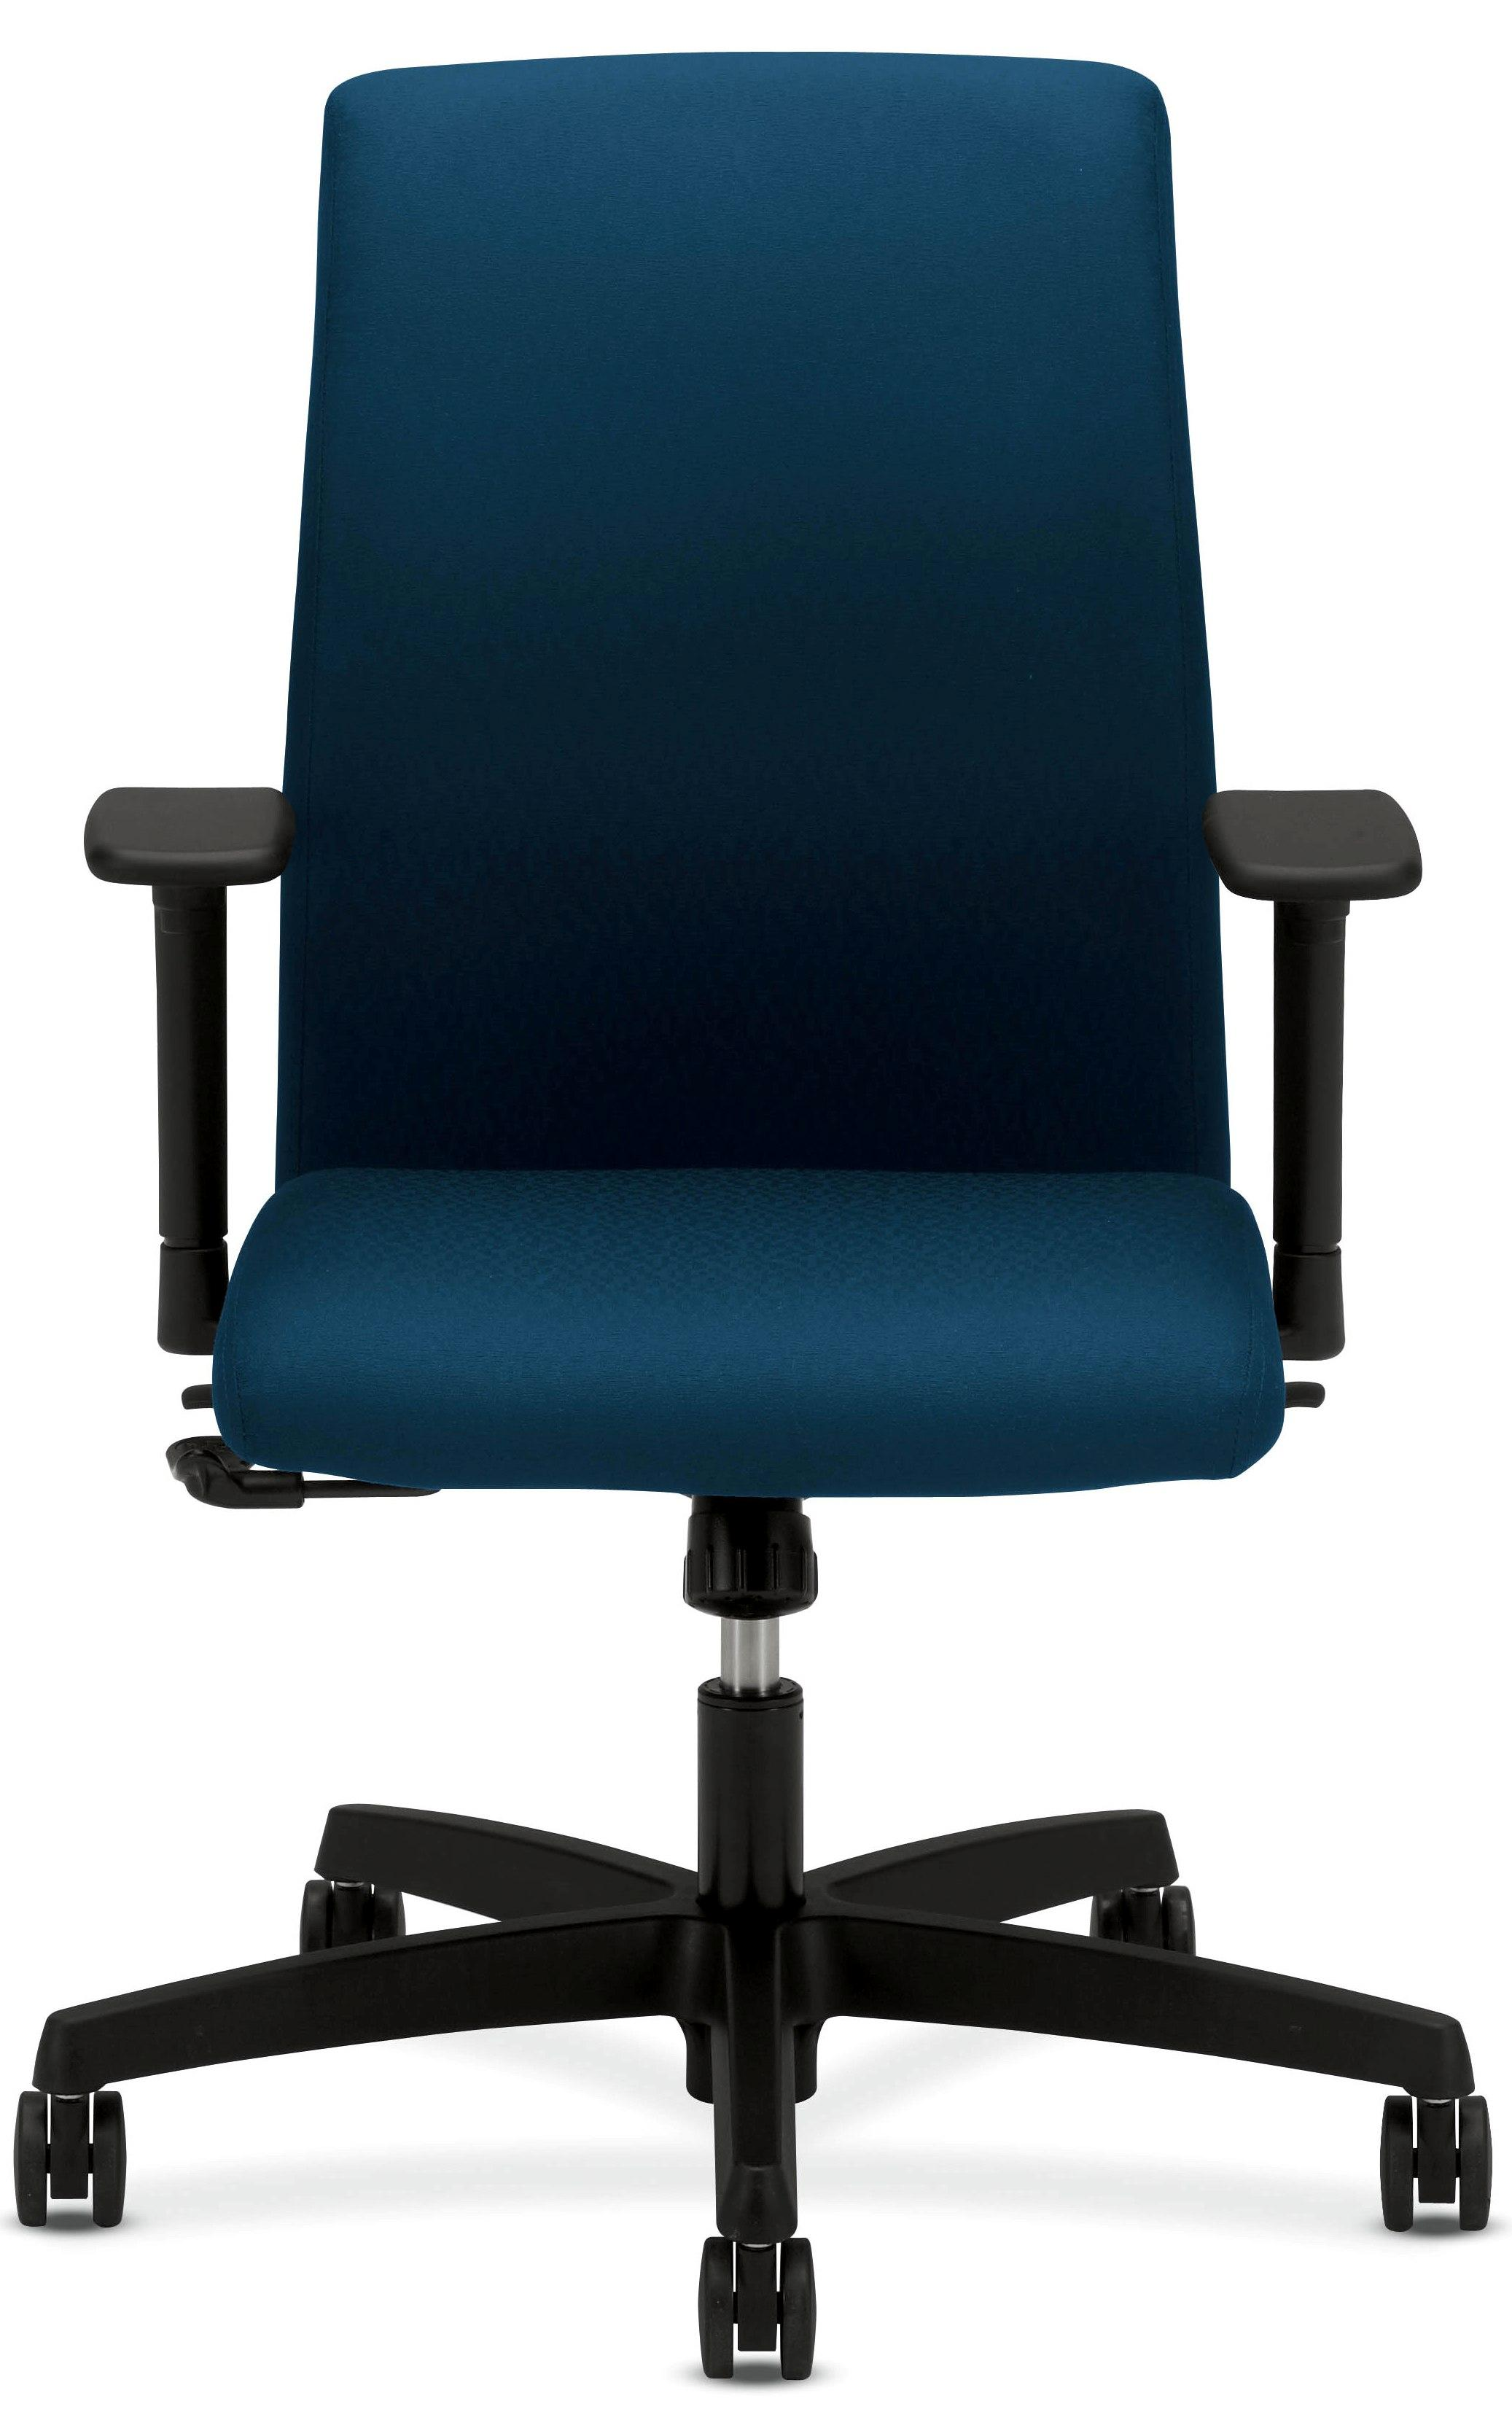 hon desk chairs buy chair covers in bulk comfortask multi task office